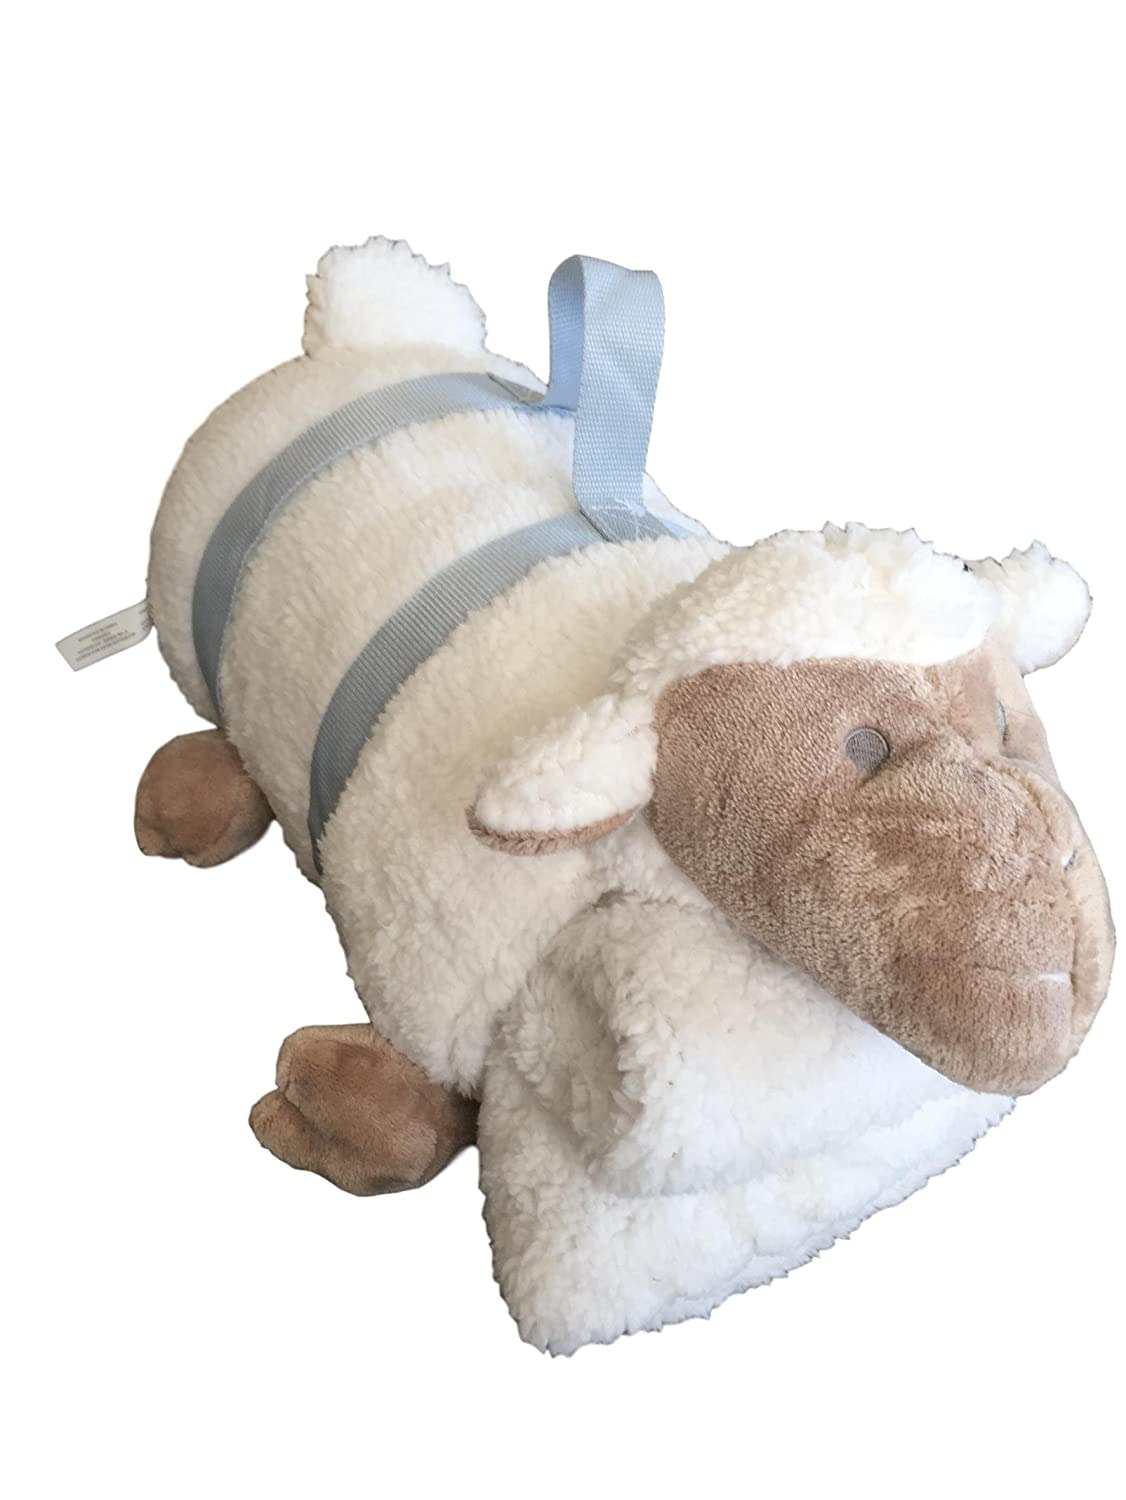 Cuddle Baby Friend Lamb and Reversible Blanket 2 Piece Set nim